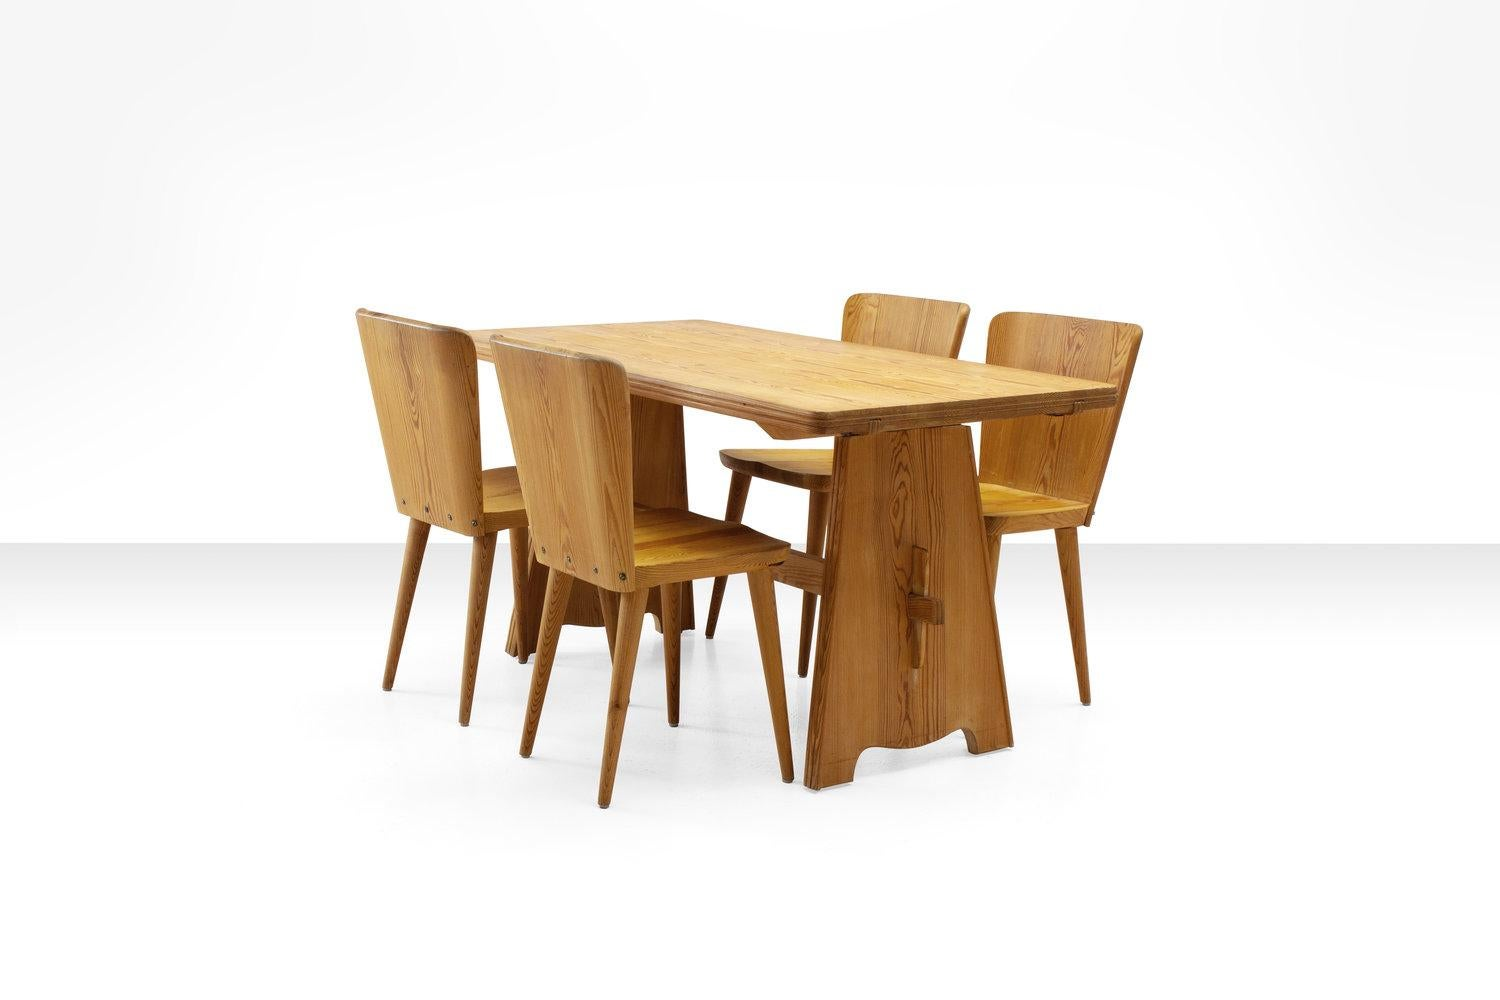 Exceptionnel Five Piece Pine Dining Set By Goran Malmvall For Karl Andersson U0026 Söner,  Sweden